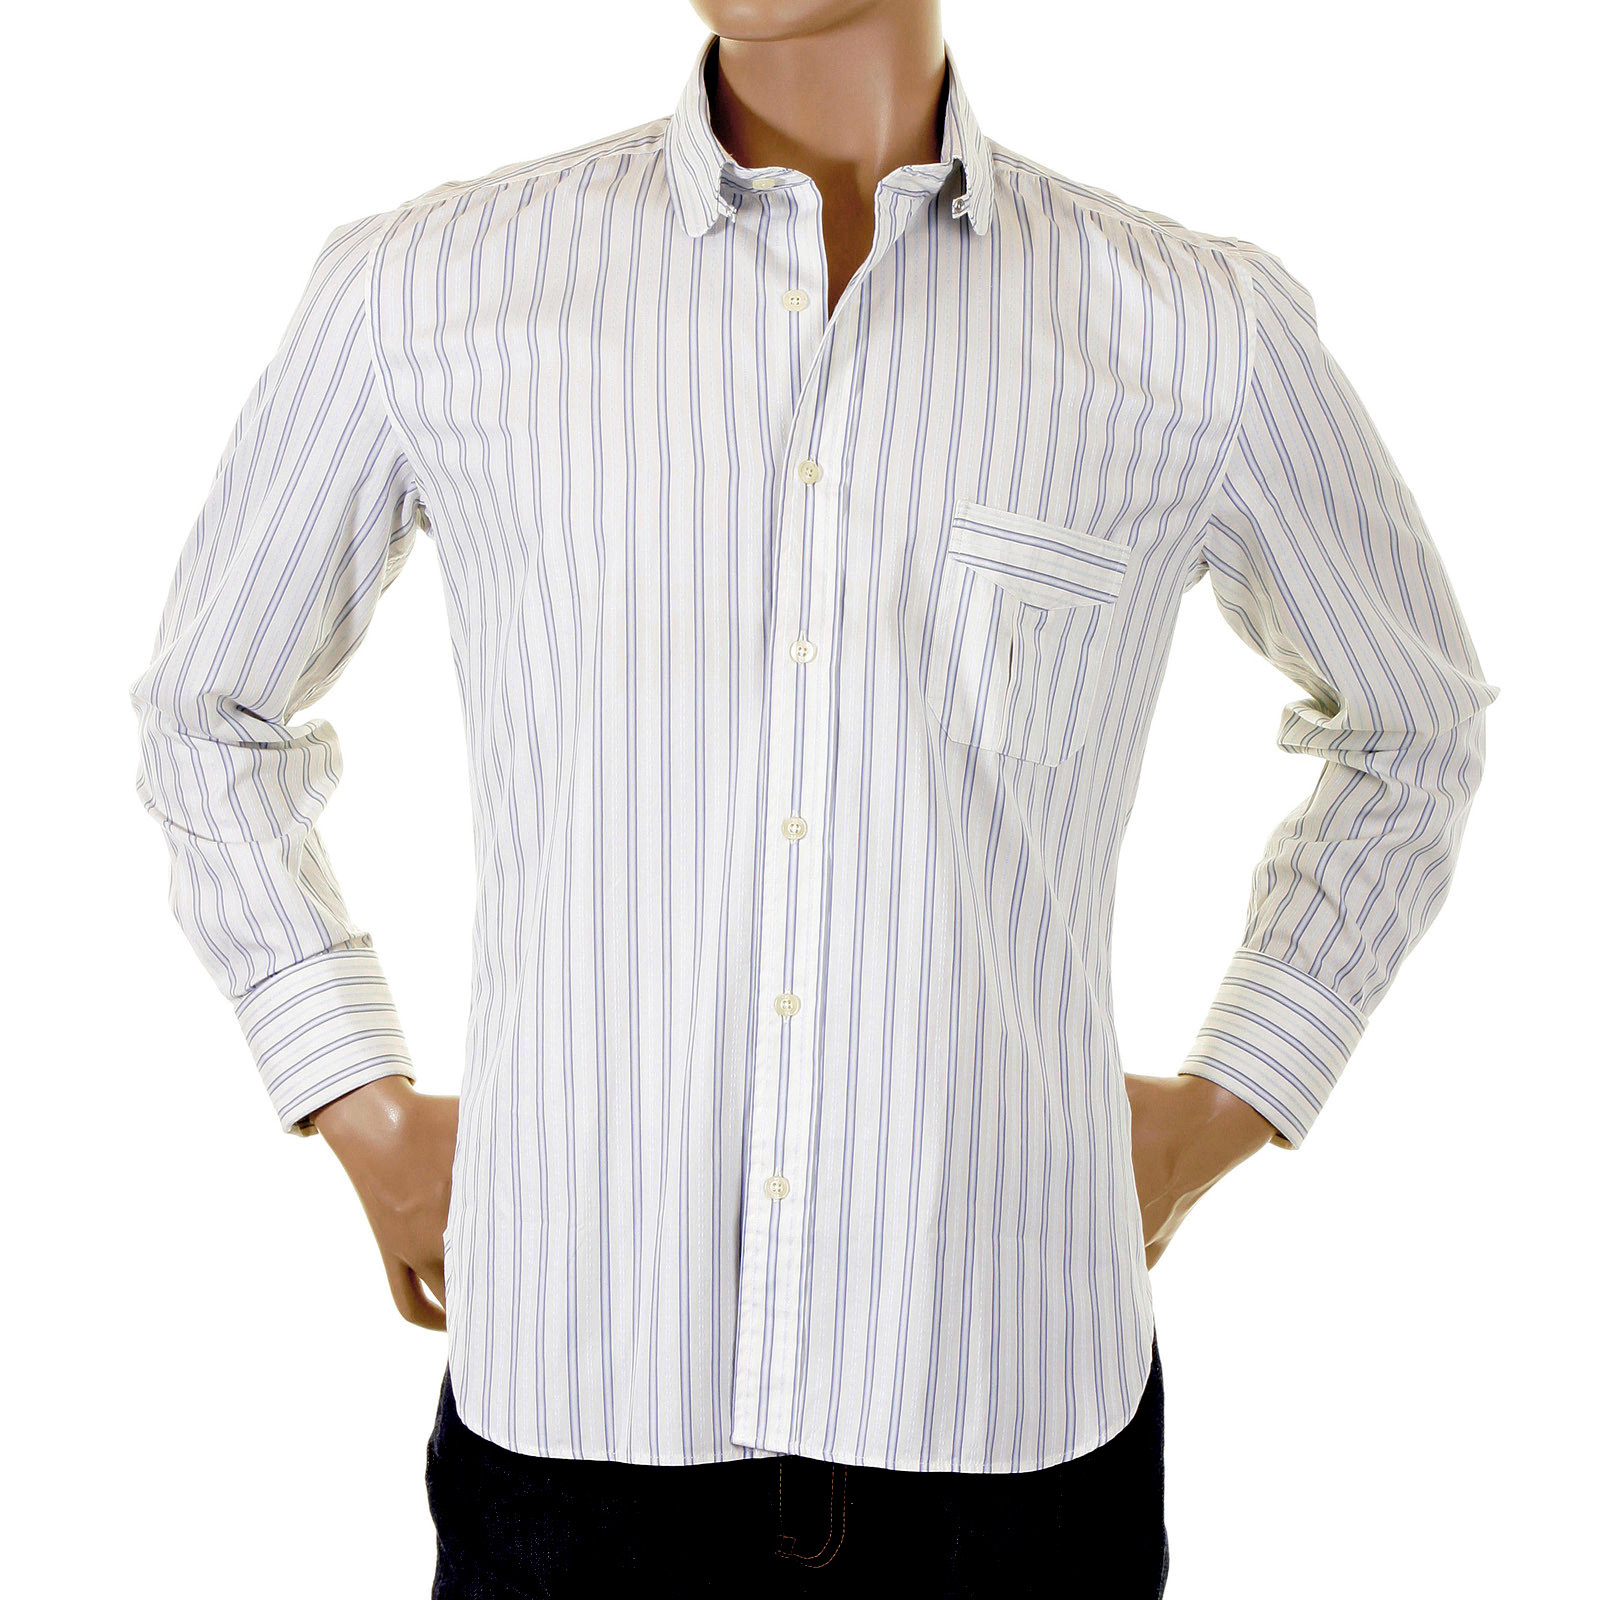 Paul Smith shirt double cuff mens blue and white striped shirt ...